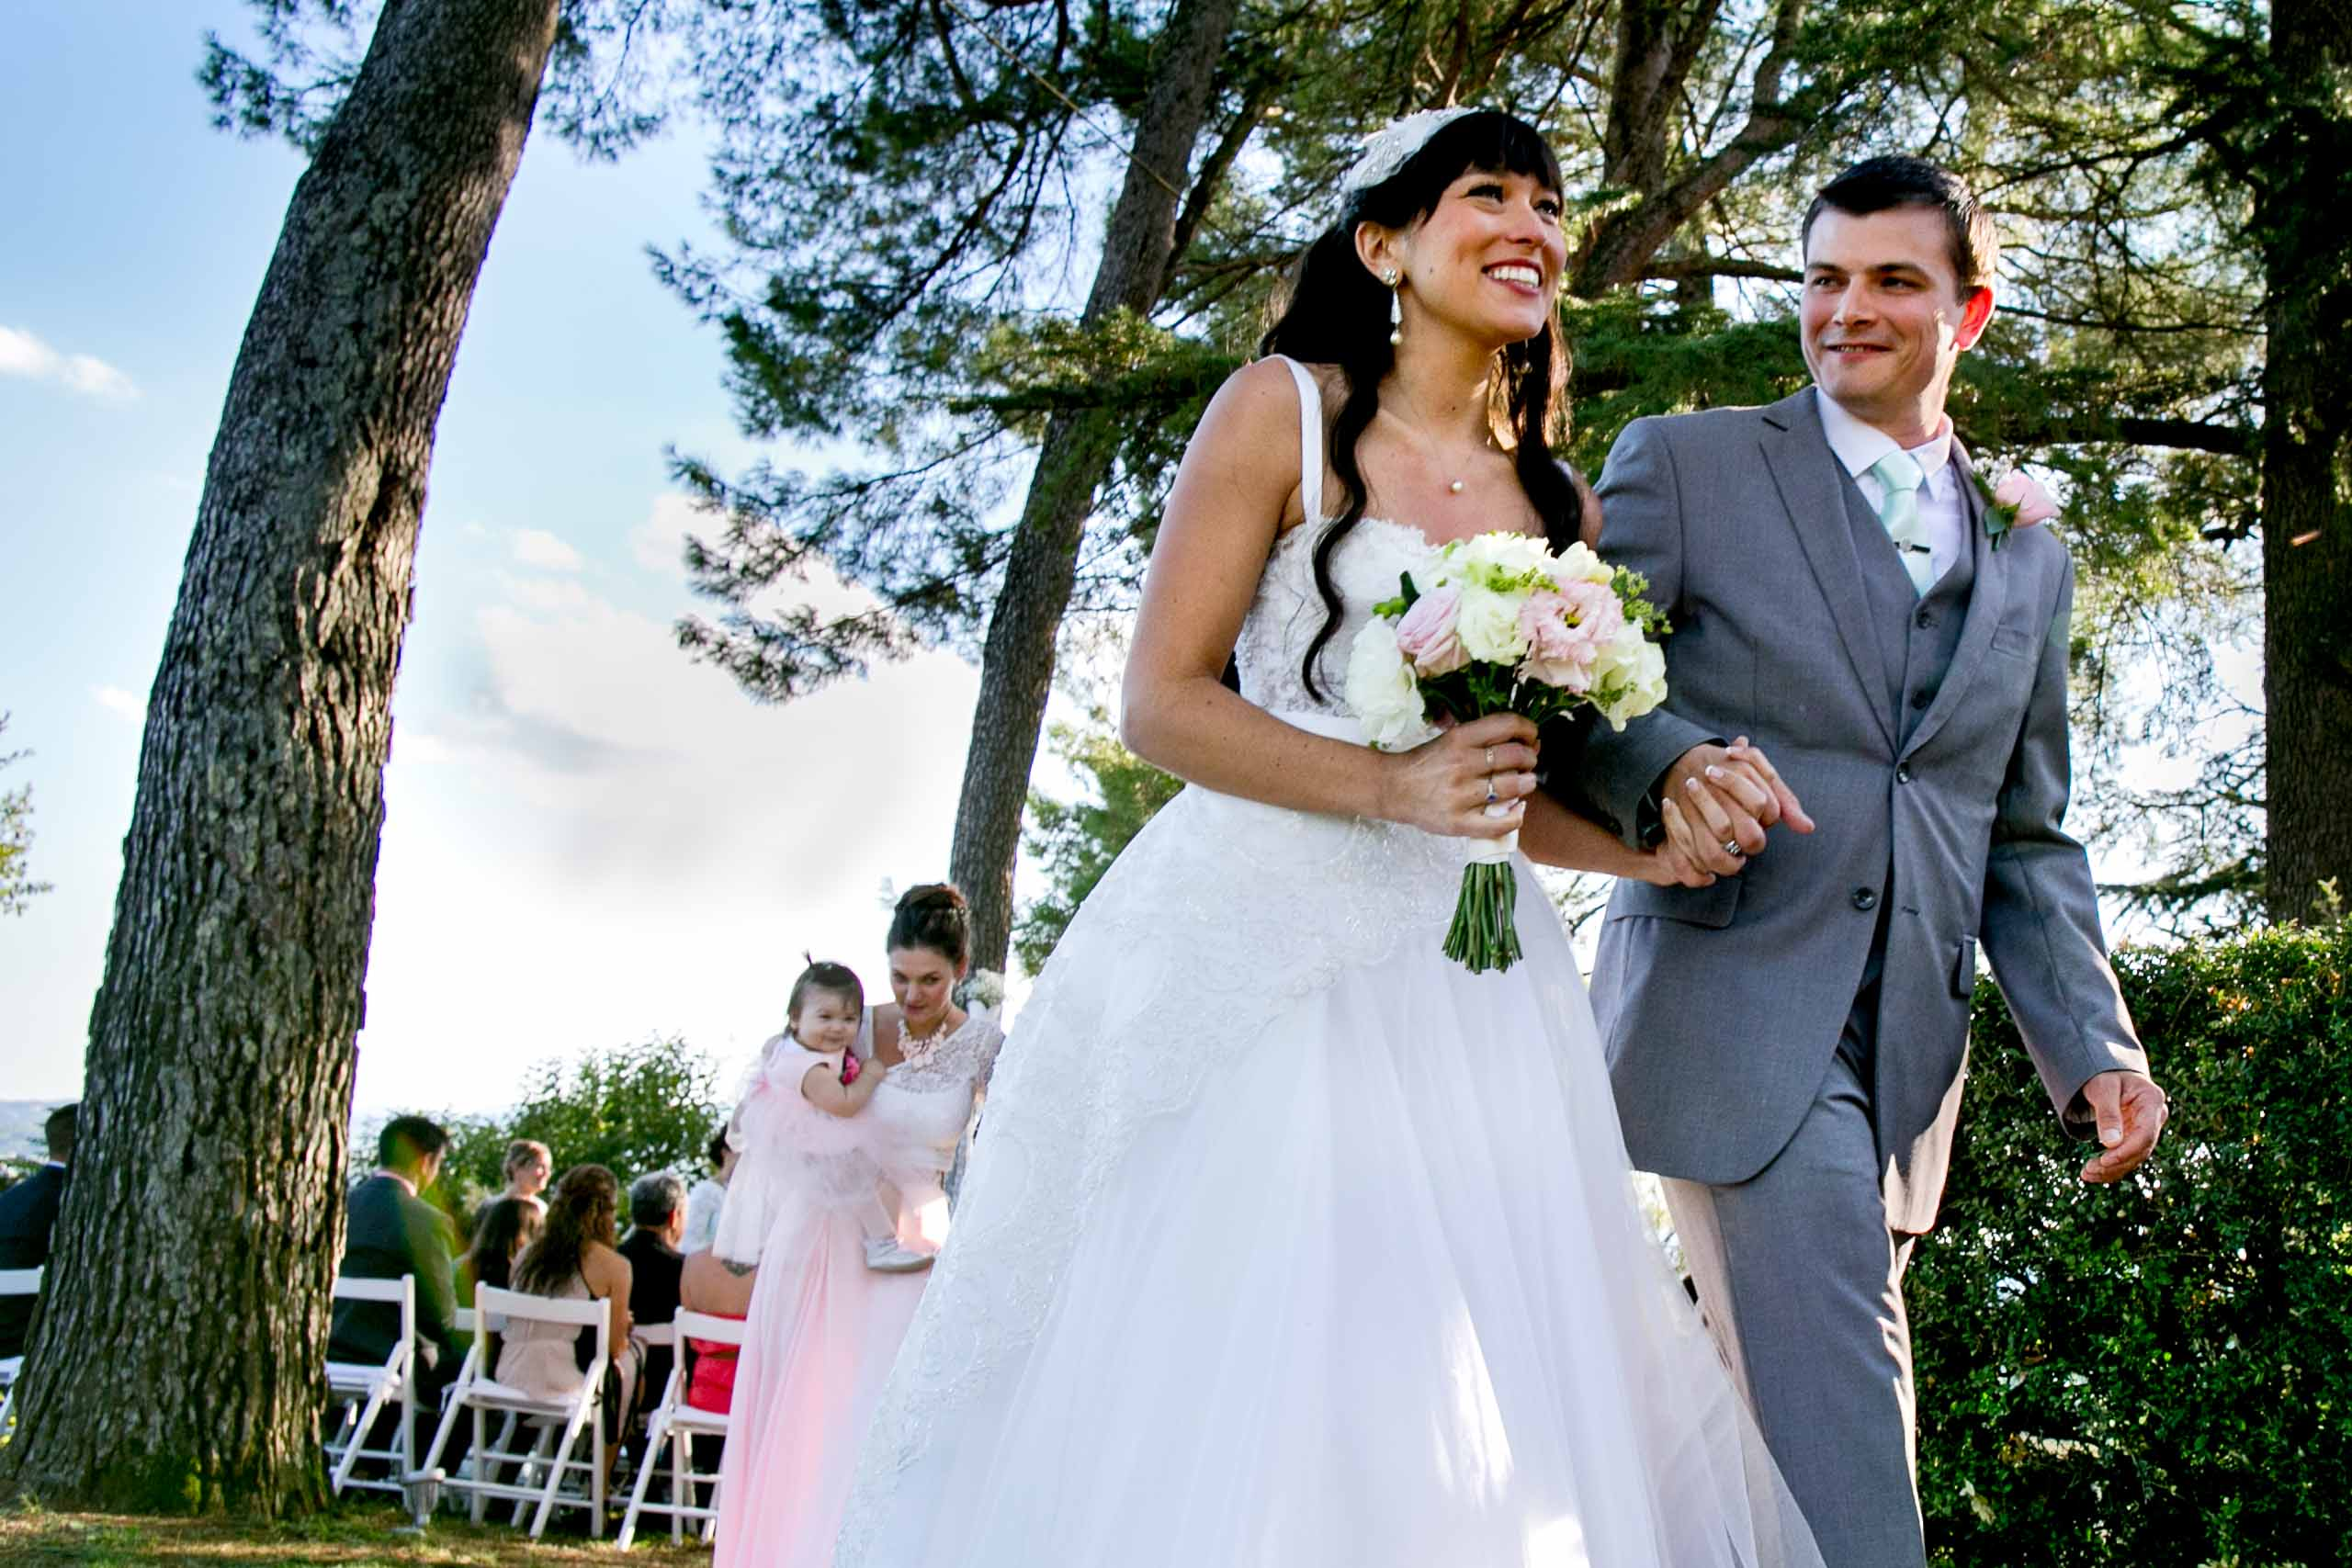 Bride and groom exiting their Villa Tre Grazie wedding ceremony near Todi, Italy in Umbria.